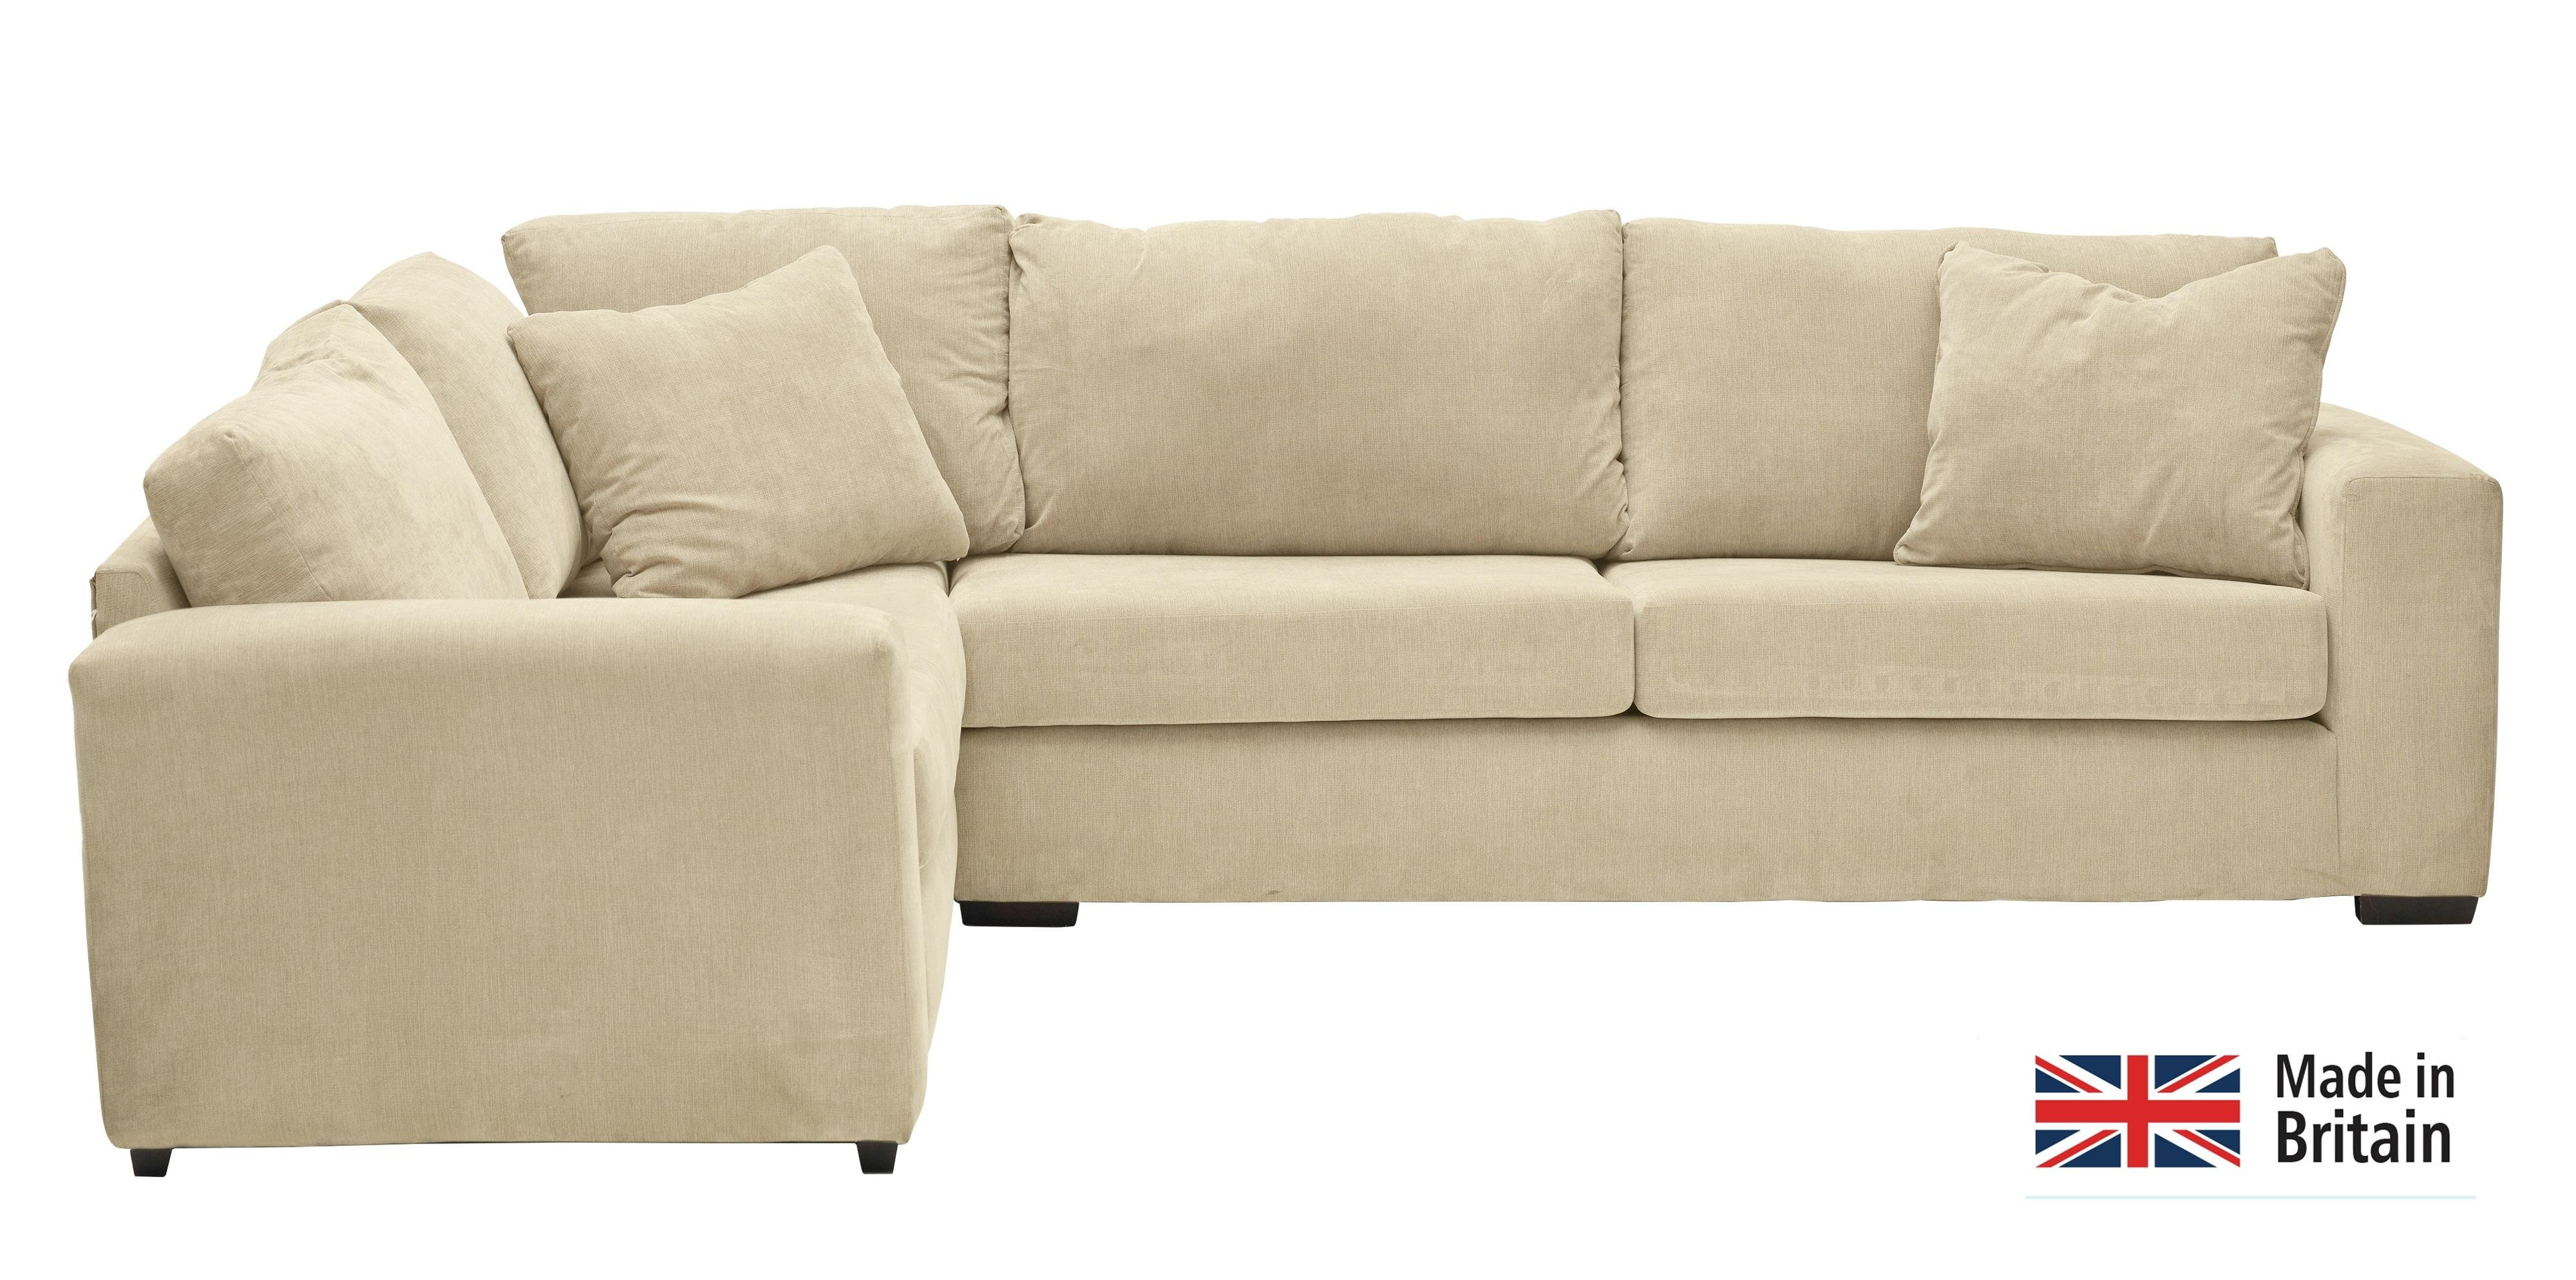 Argos Home Eton Left Corner Fabric Sofa - Mink